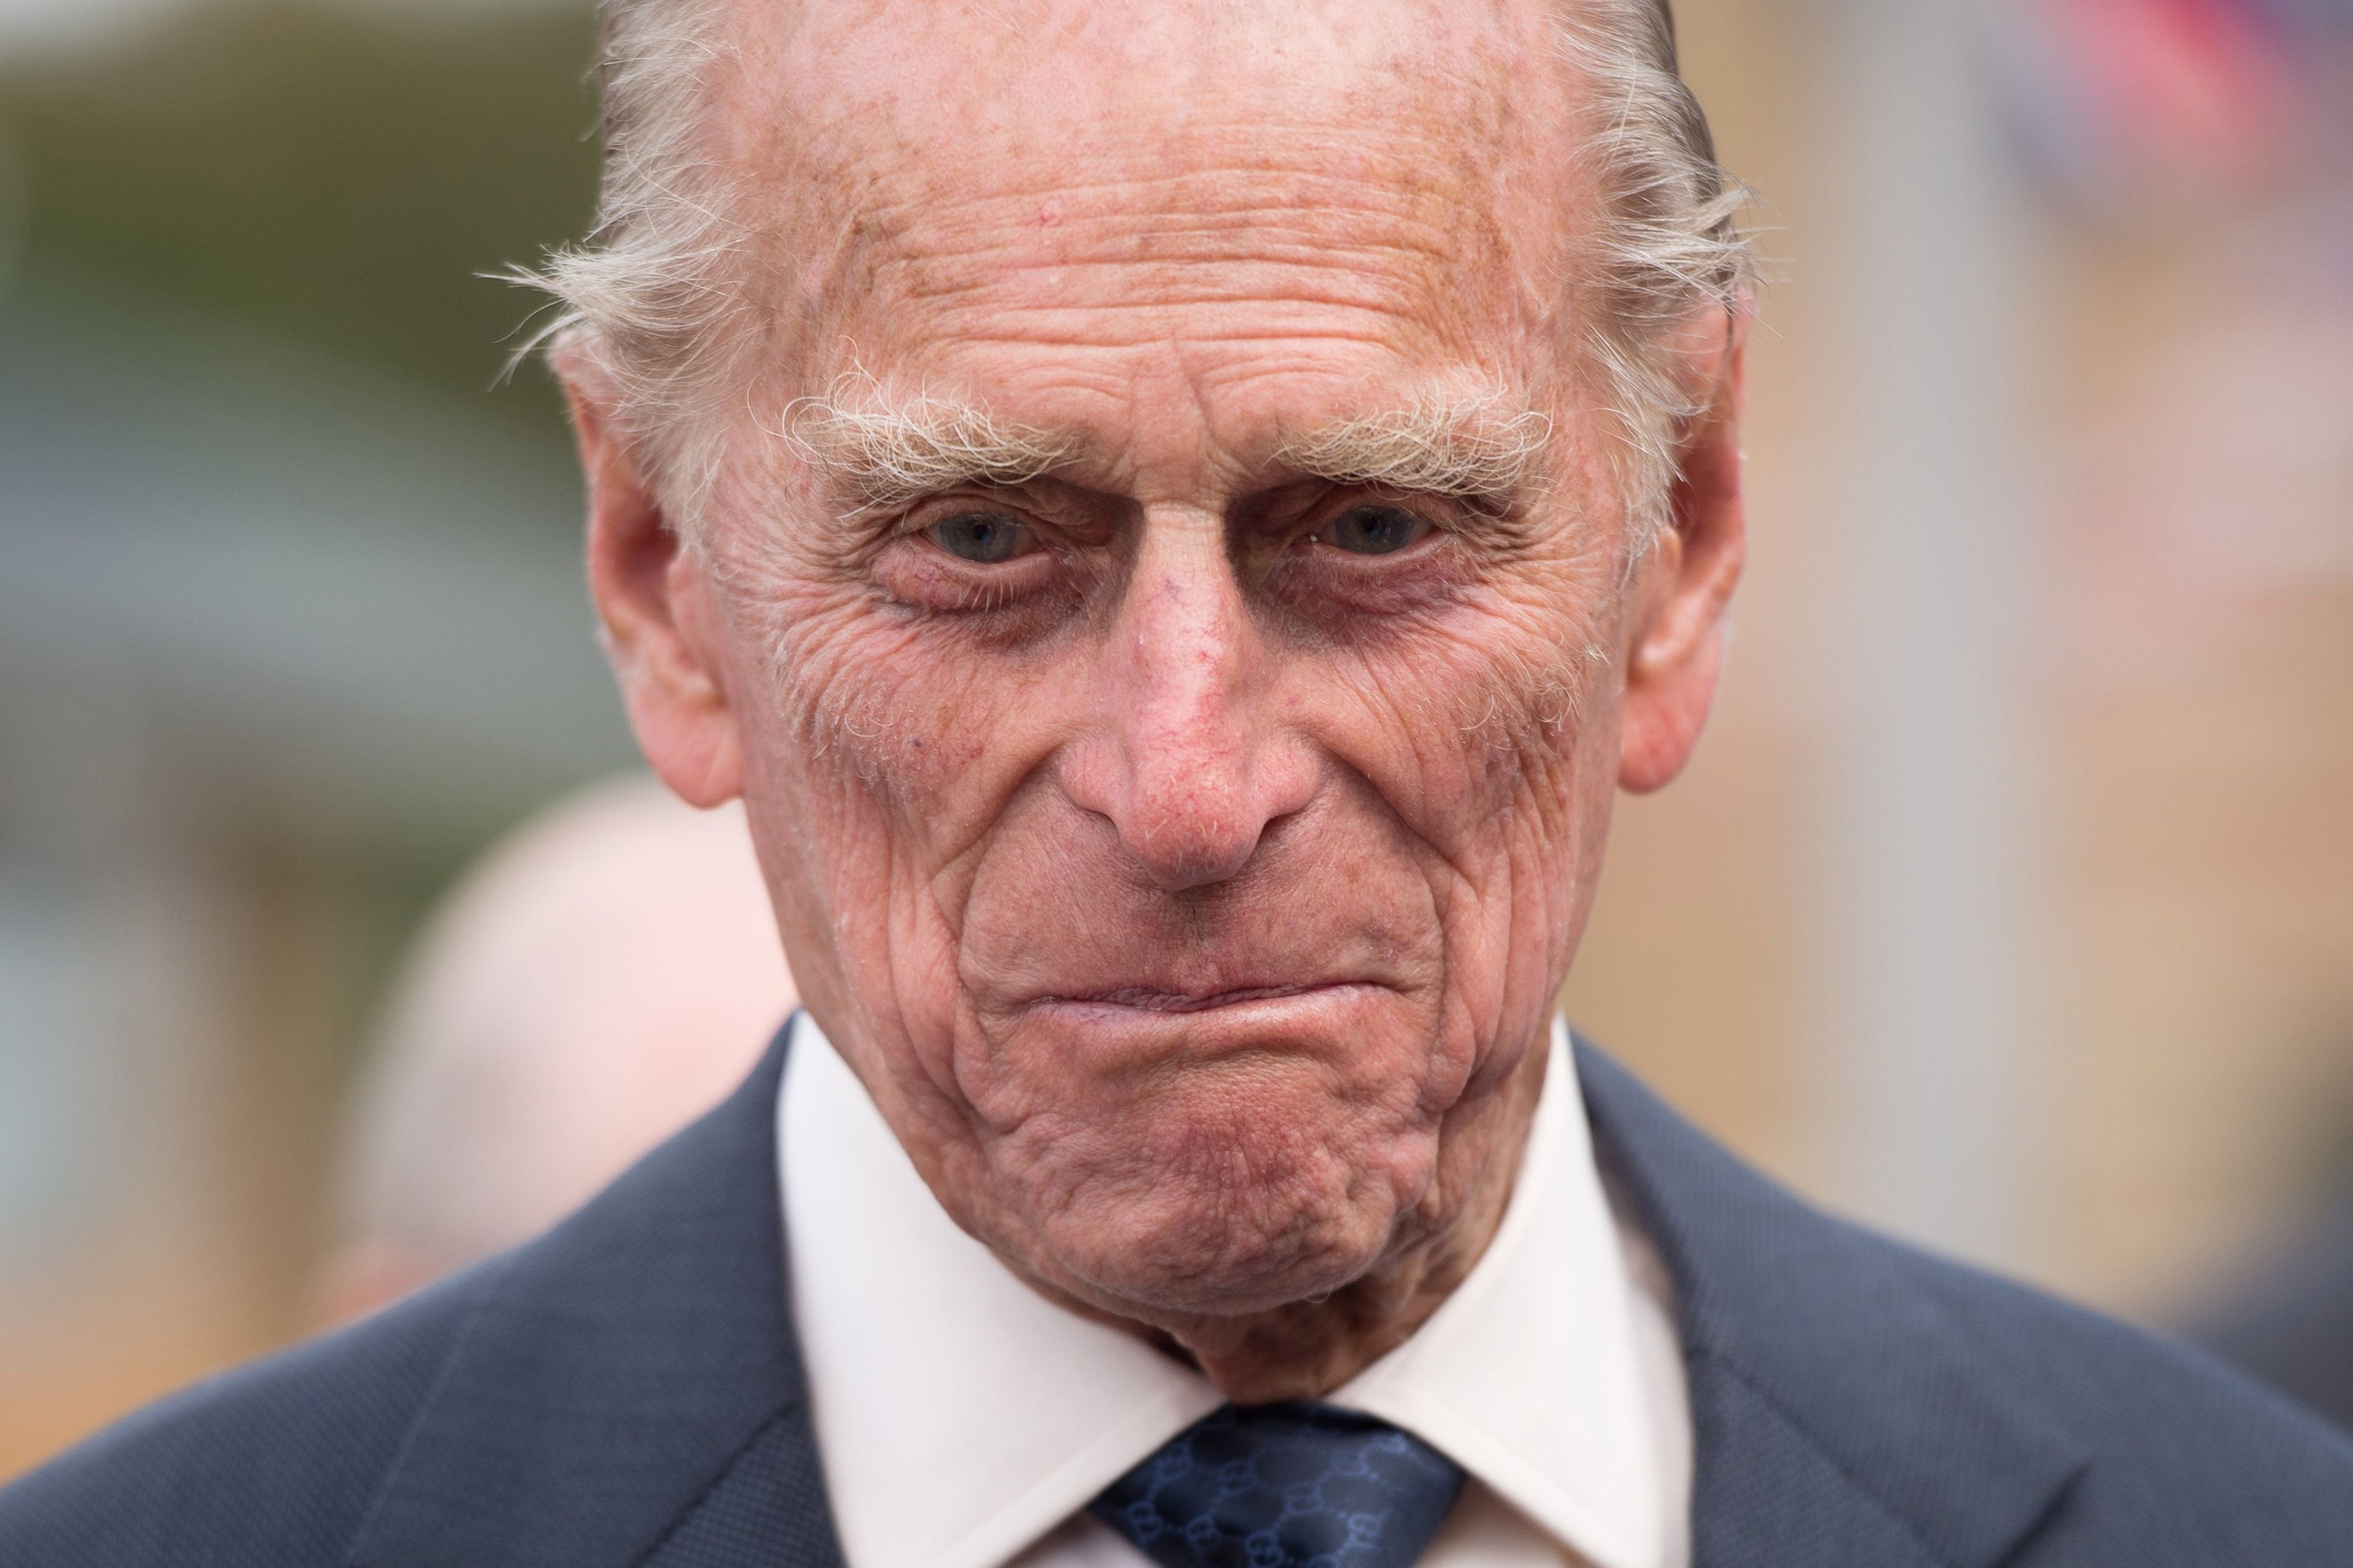 Prince Philip's Most *Cringeworthy* Quotes Prove His Unique Style Will Be